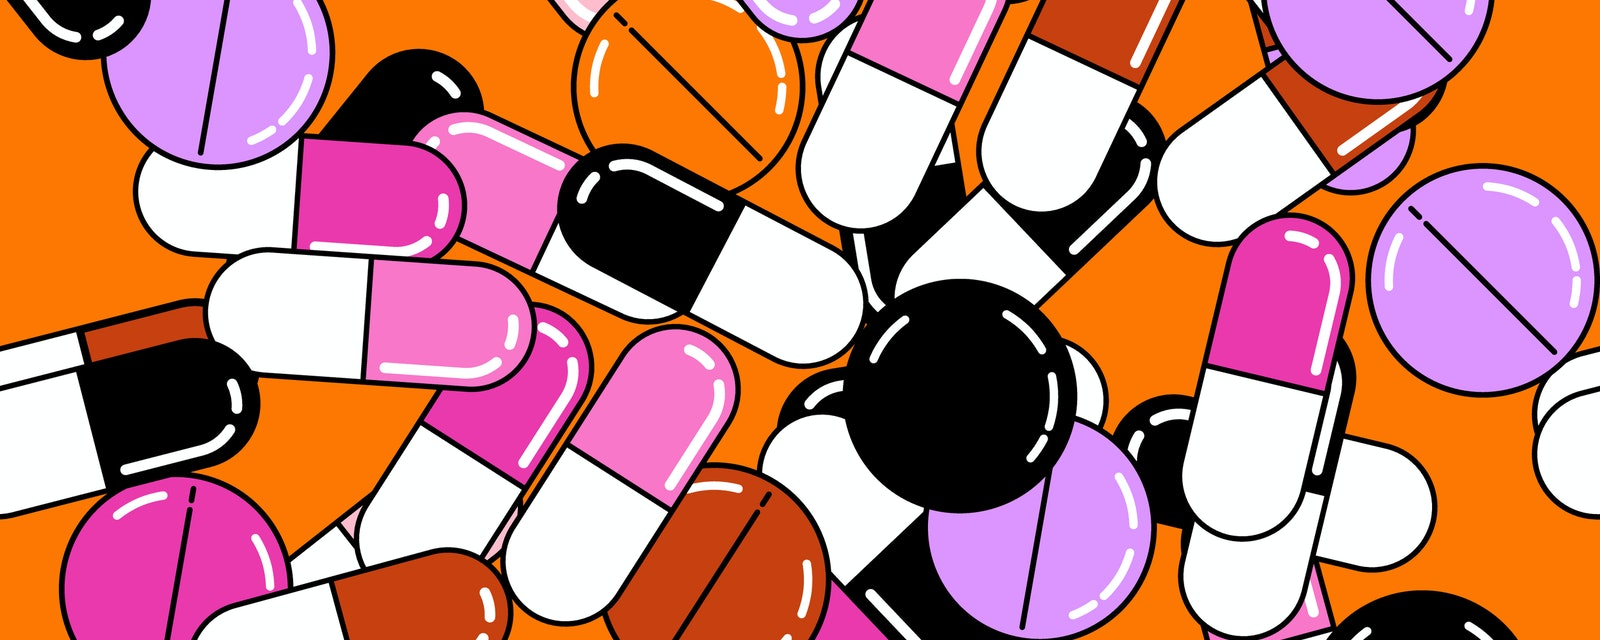 Seamless vector pattern with colorful  medical pills in vaporwave cartoon 80s-90s style.